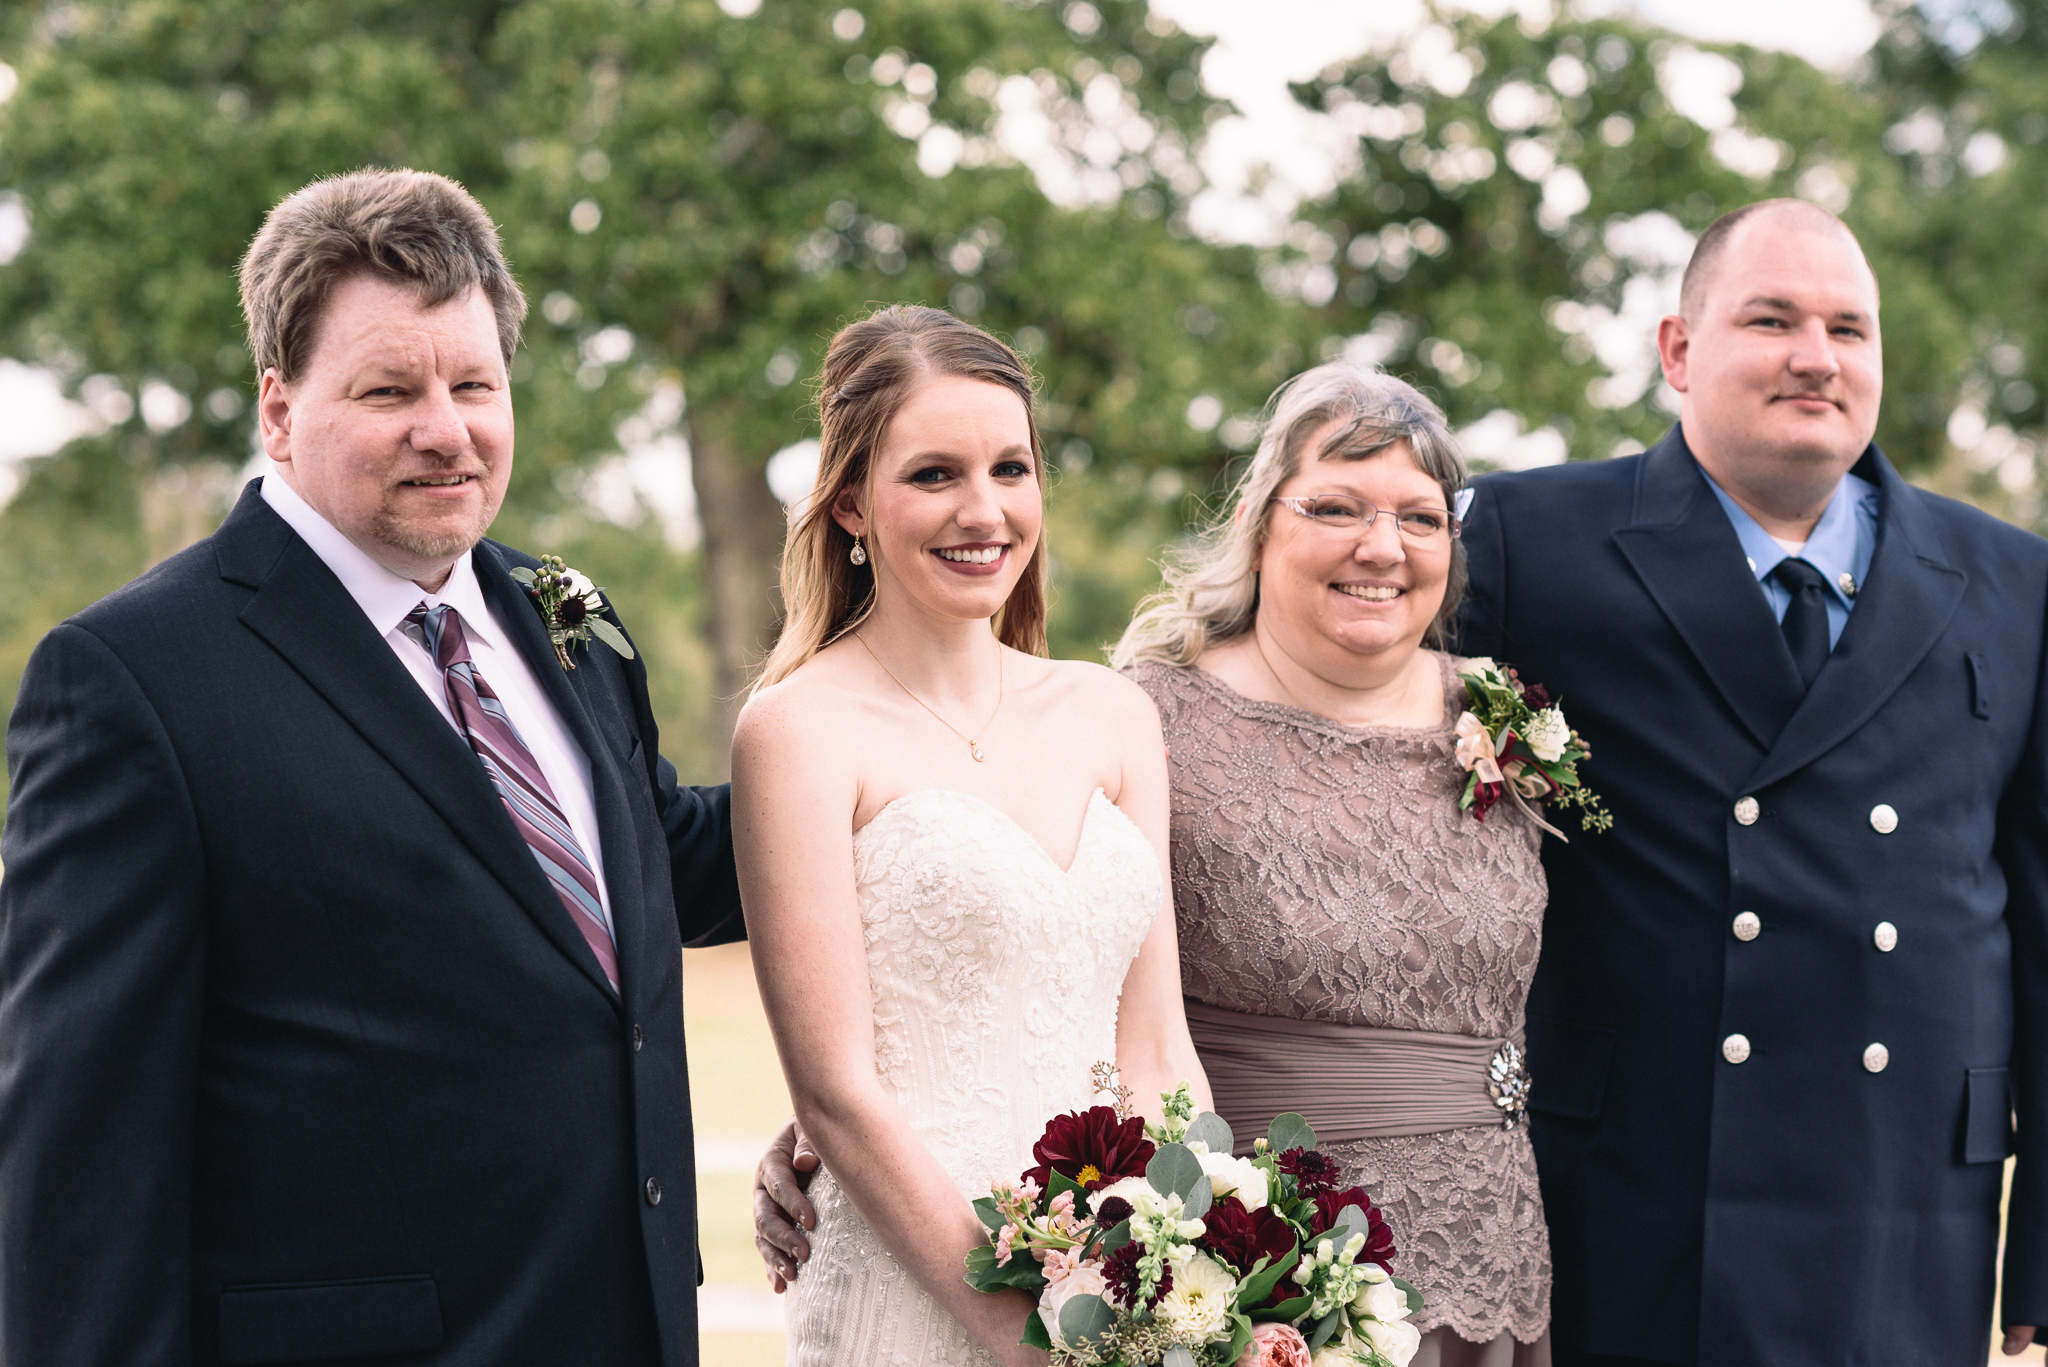 bride's family mother father brother family portrait wedding bouquet